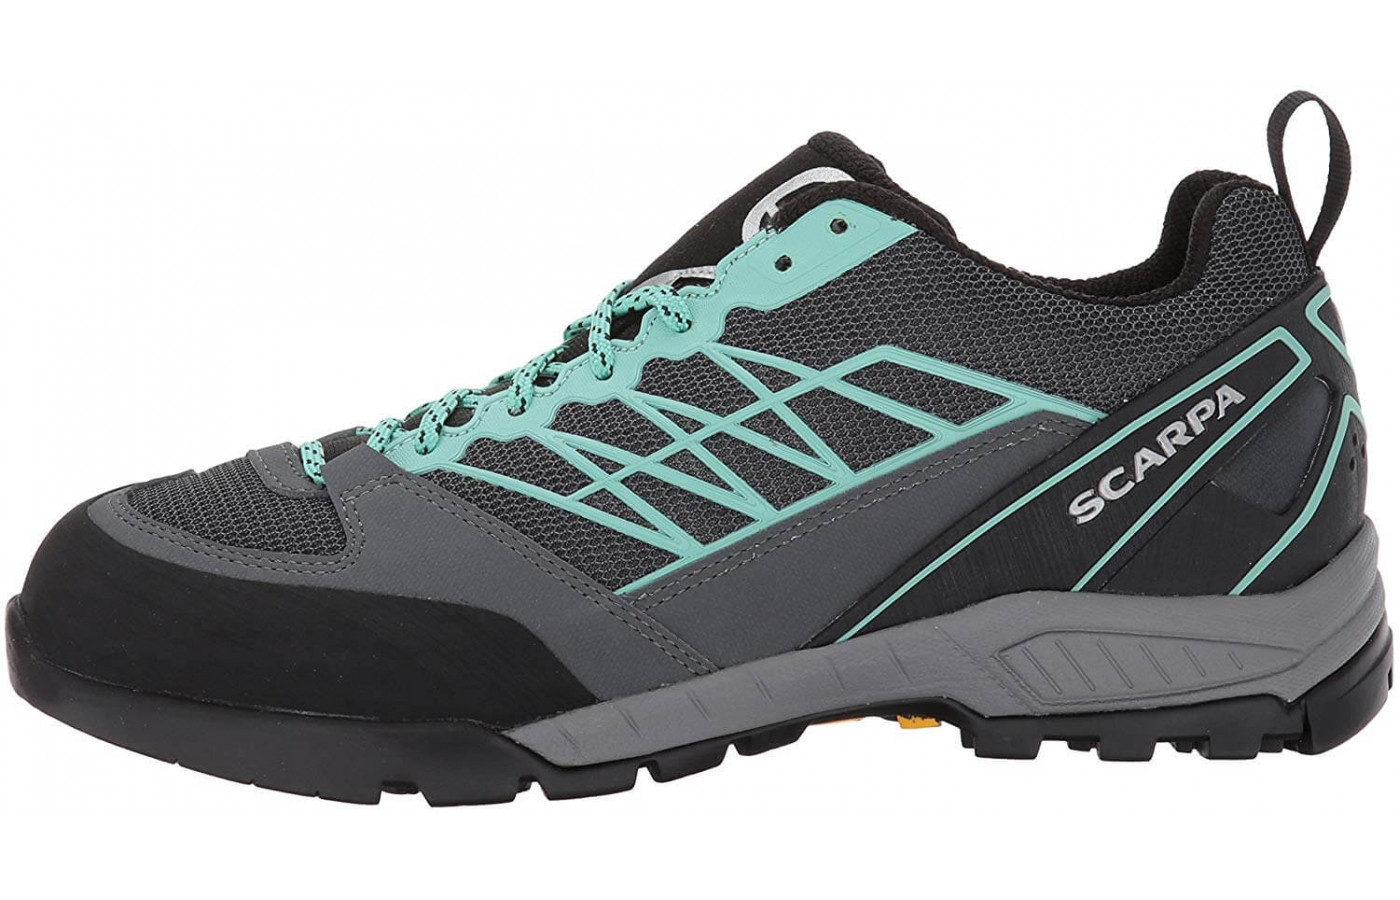 A P-FLex Lite footbed adds to the Epic Lite's cushioning